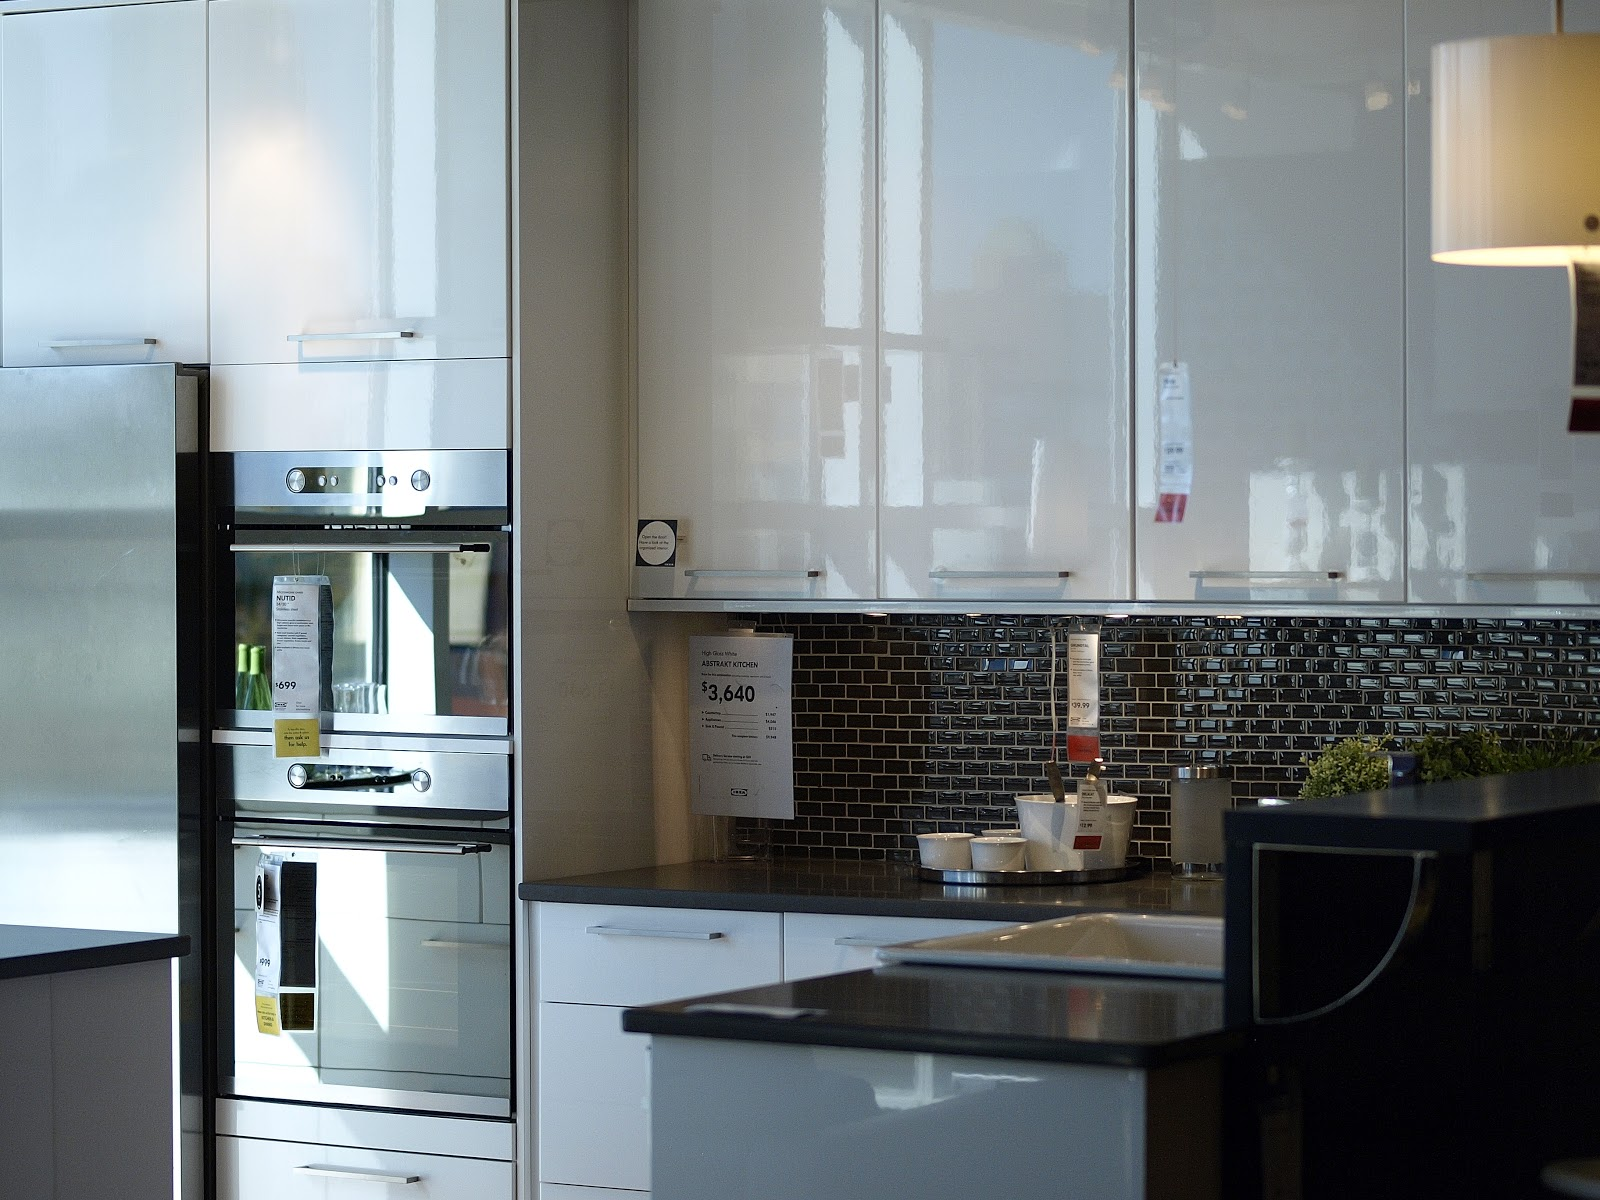 Shiny White Kitchen Cabinets Shiny White Kitchen Cabinets Pictures To Pin On Pinterest Pinsdaddy